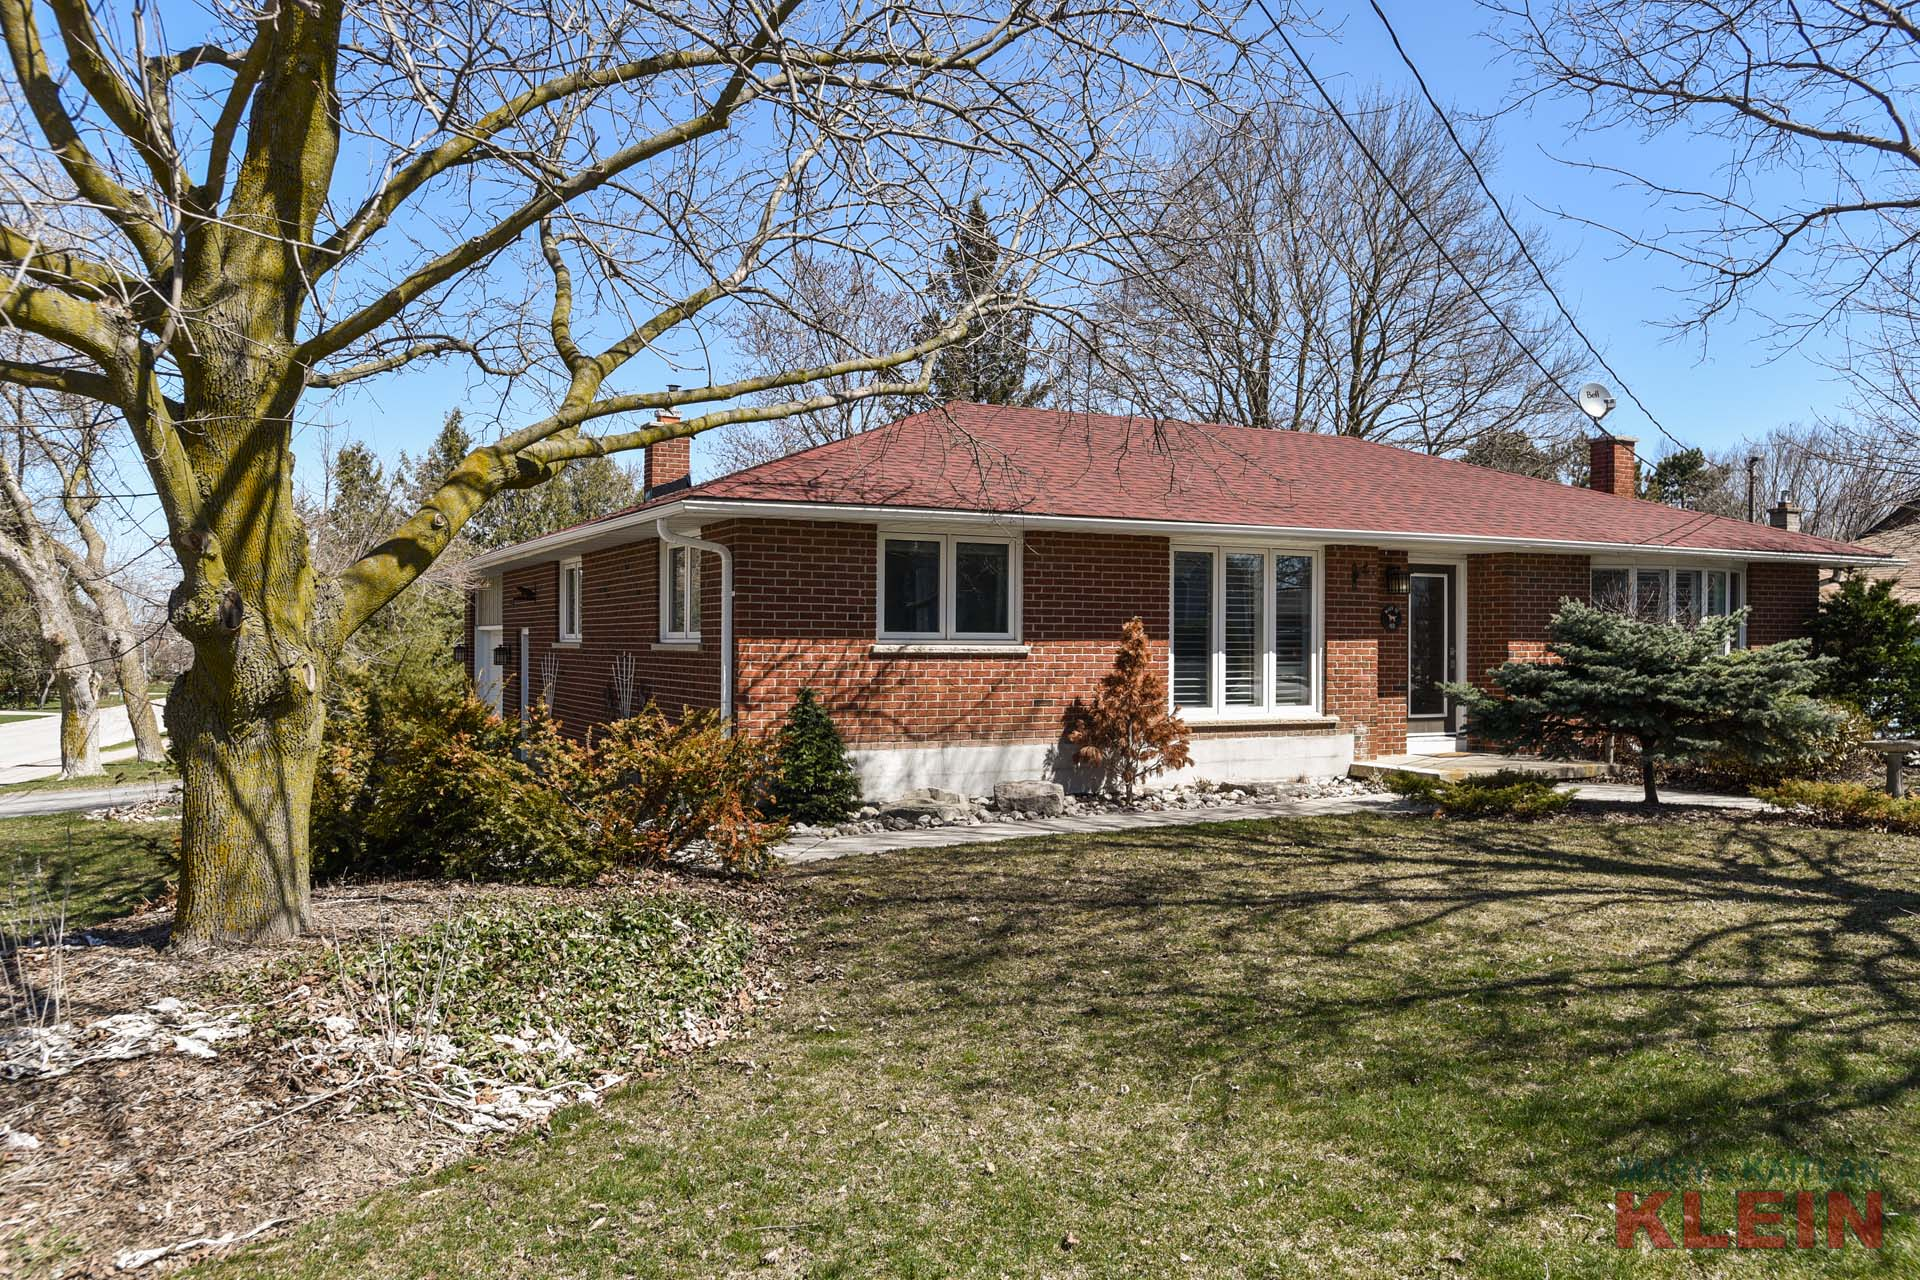 Schomberg, House for sale, bungalow, Main Street, Klein